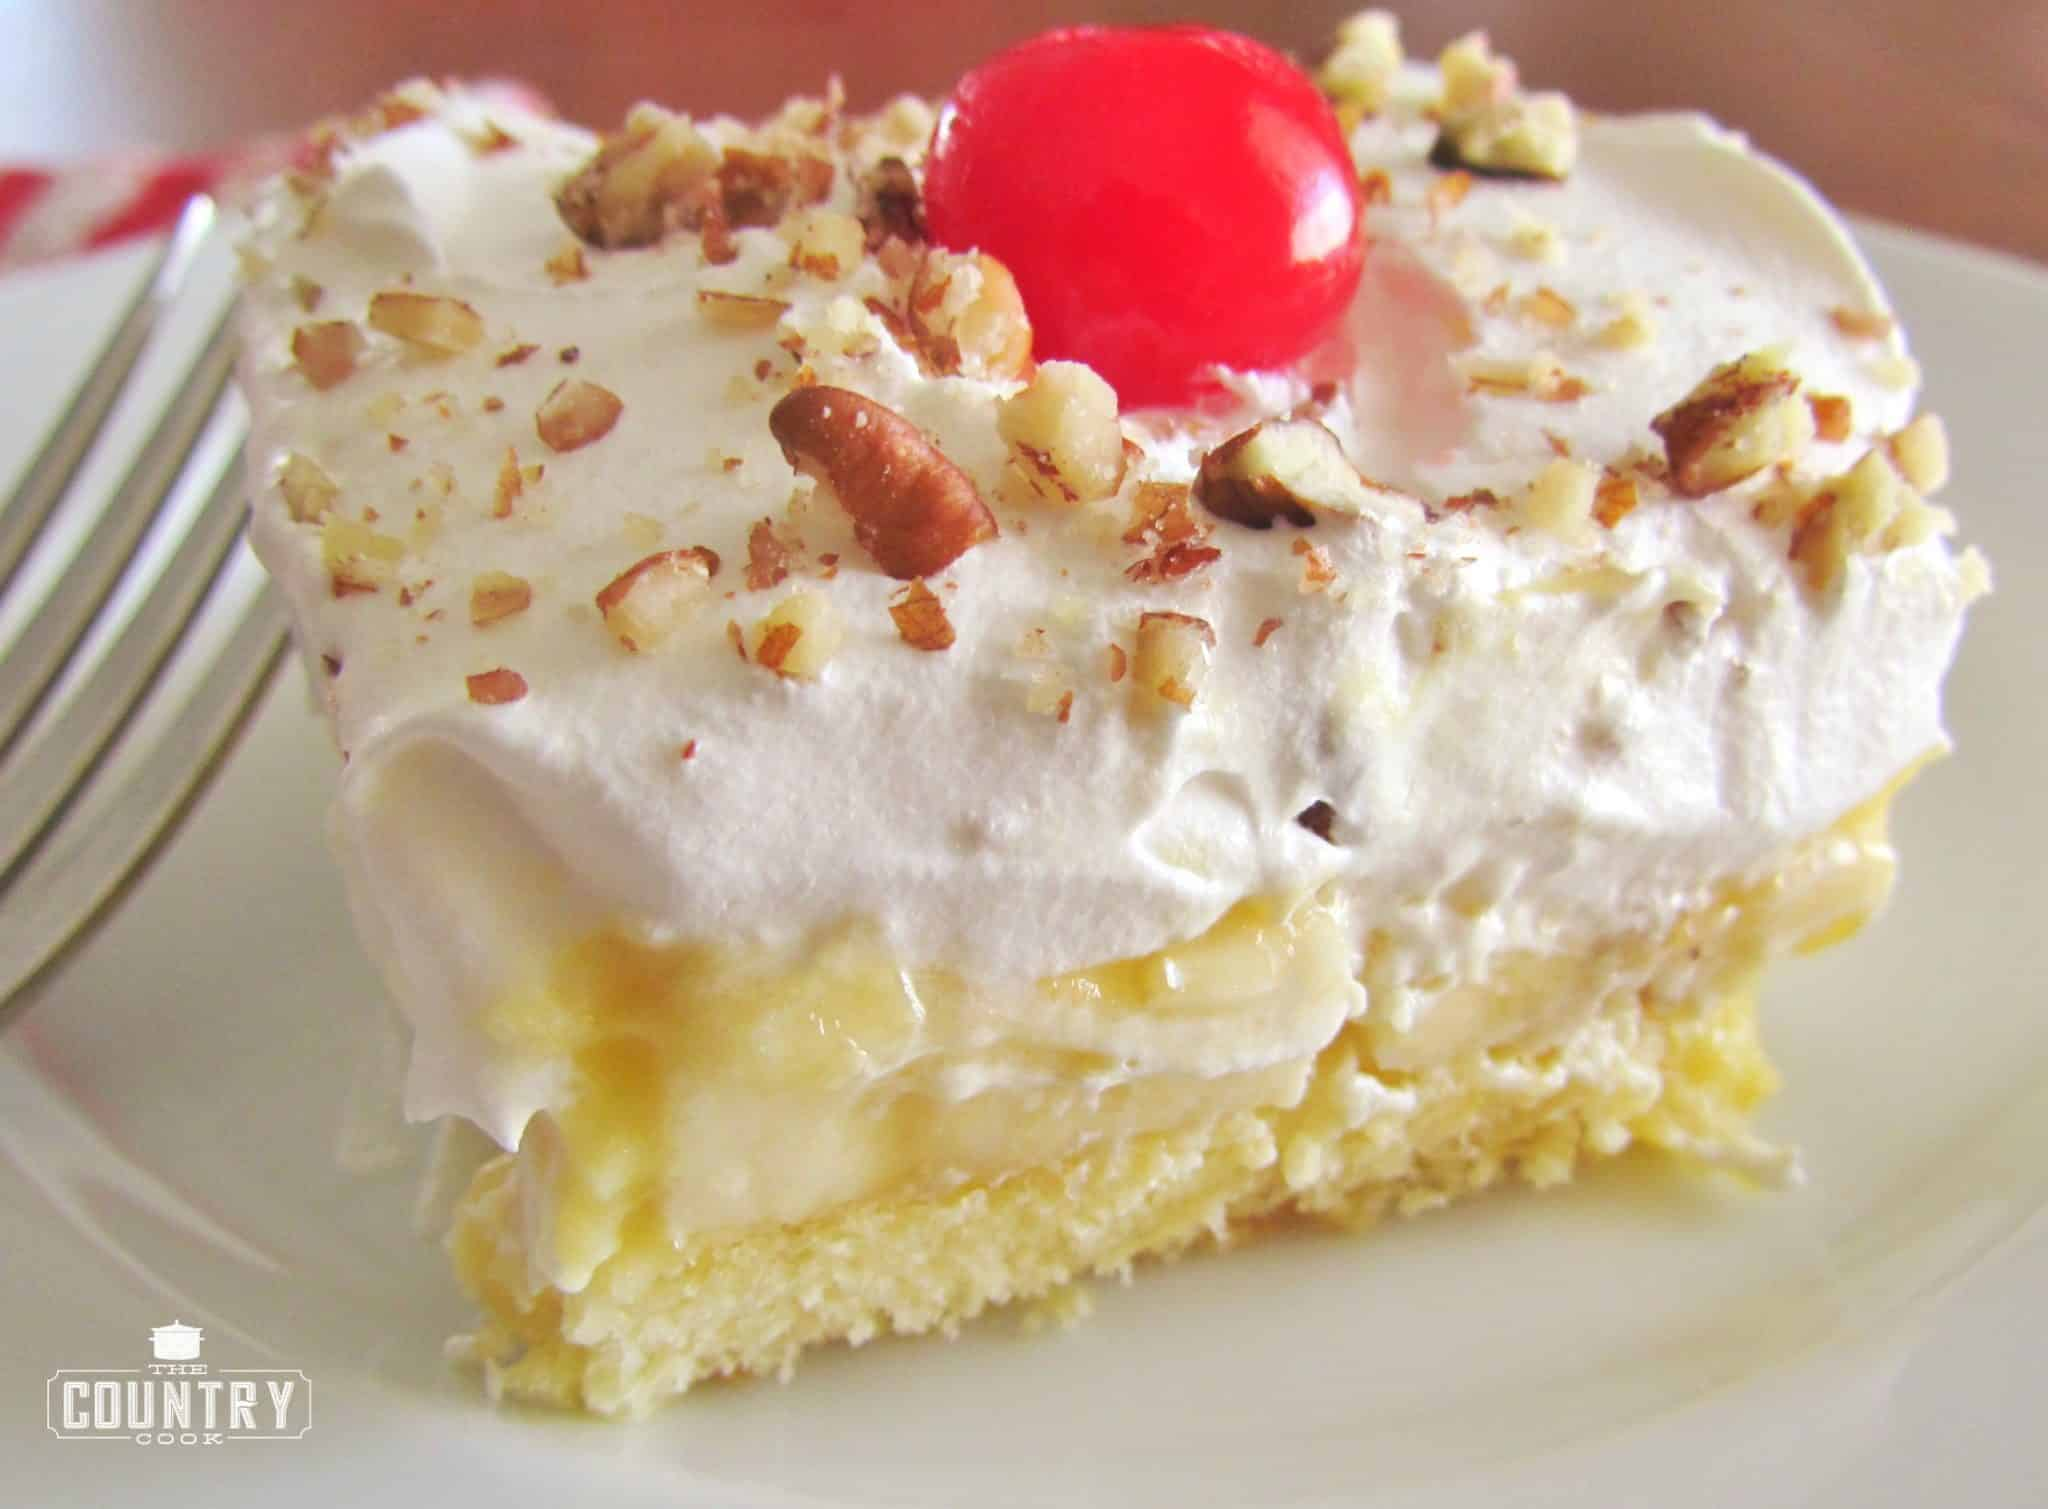 Cake Recipes Cooked In Microwave: No-Bake Twinkie Cake